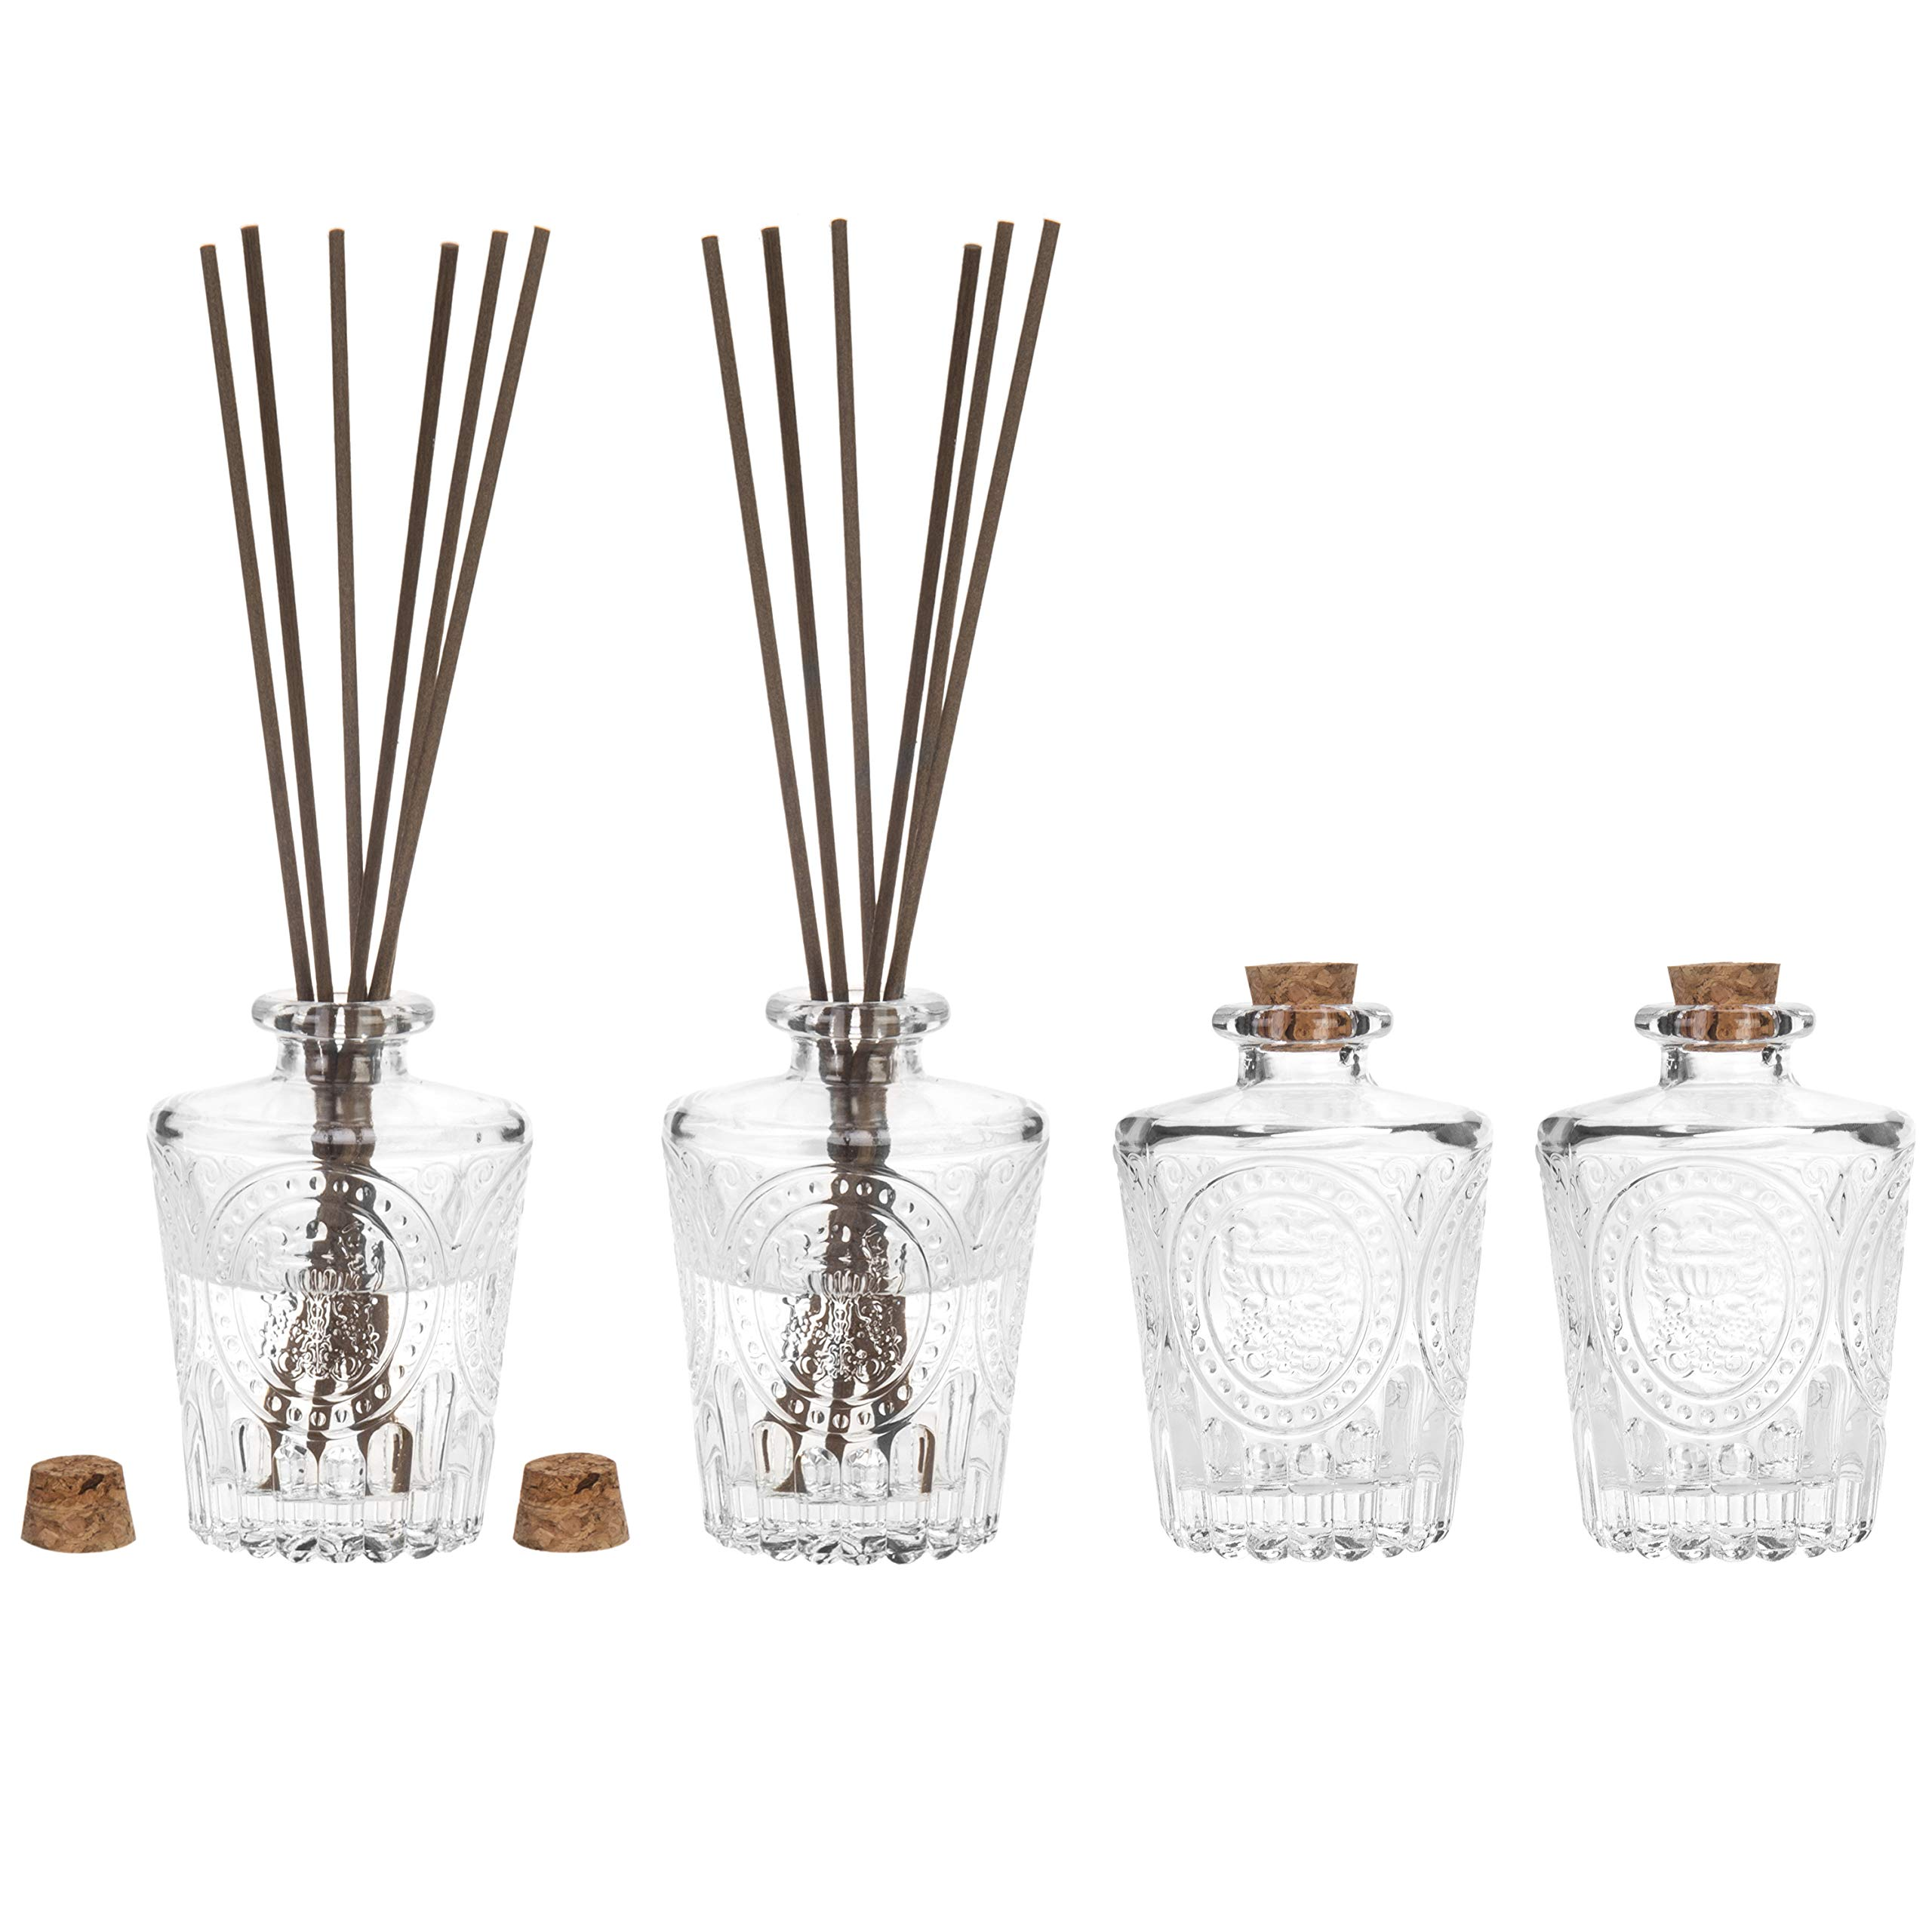 MyGift Vintage Embossed Glass Diffuser Bottles with Corked Lids, Set of 4